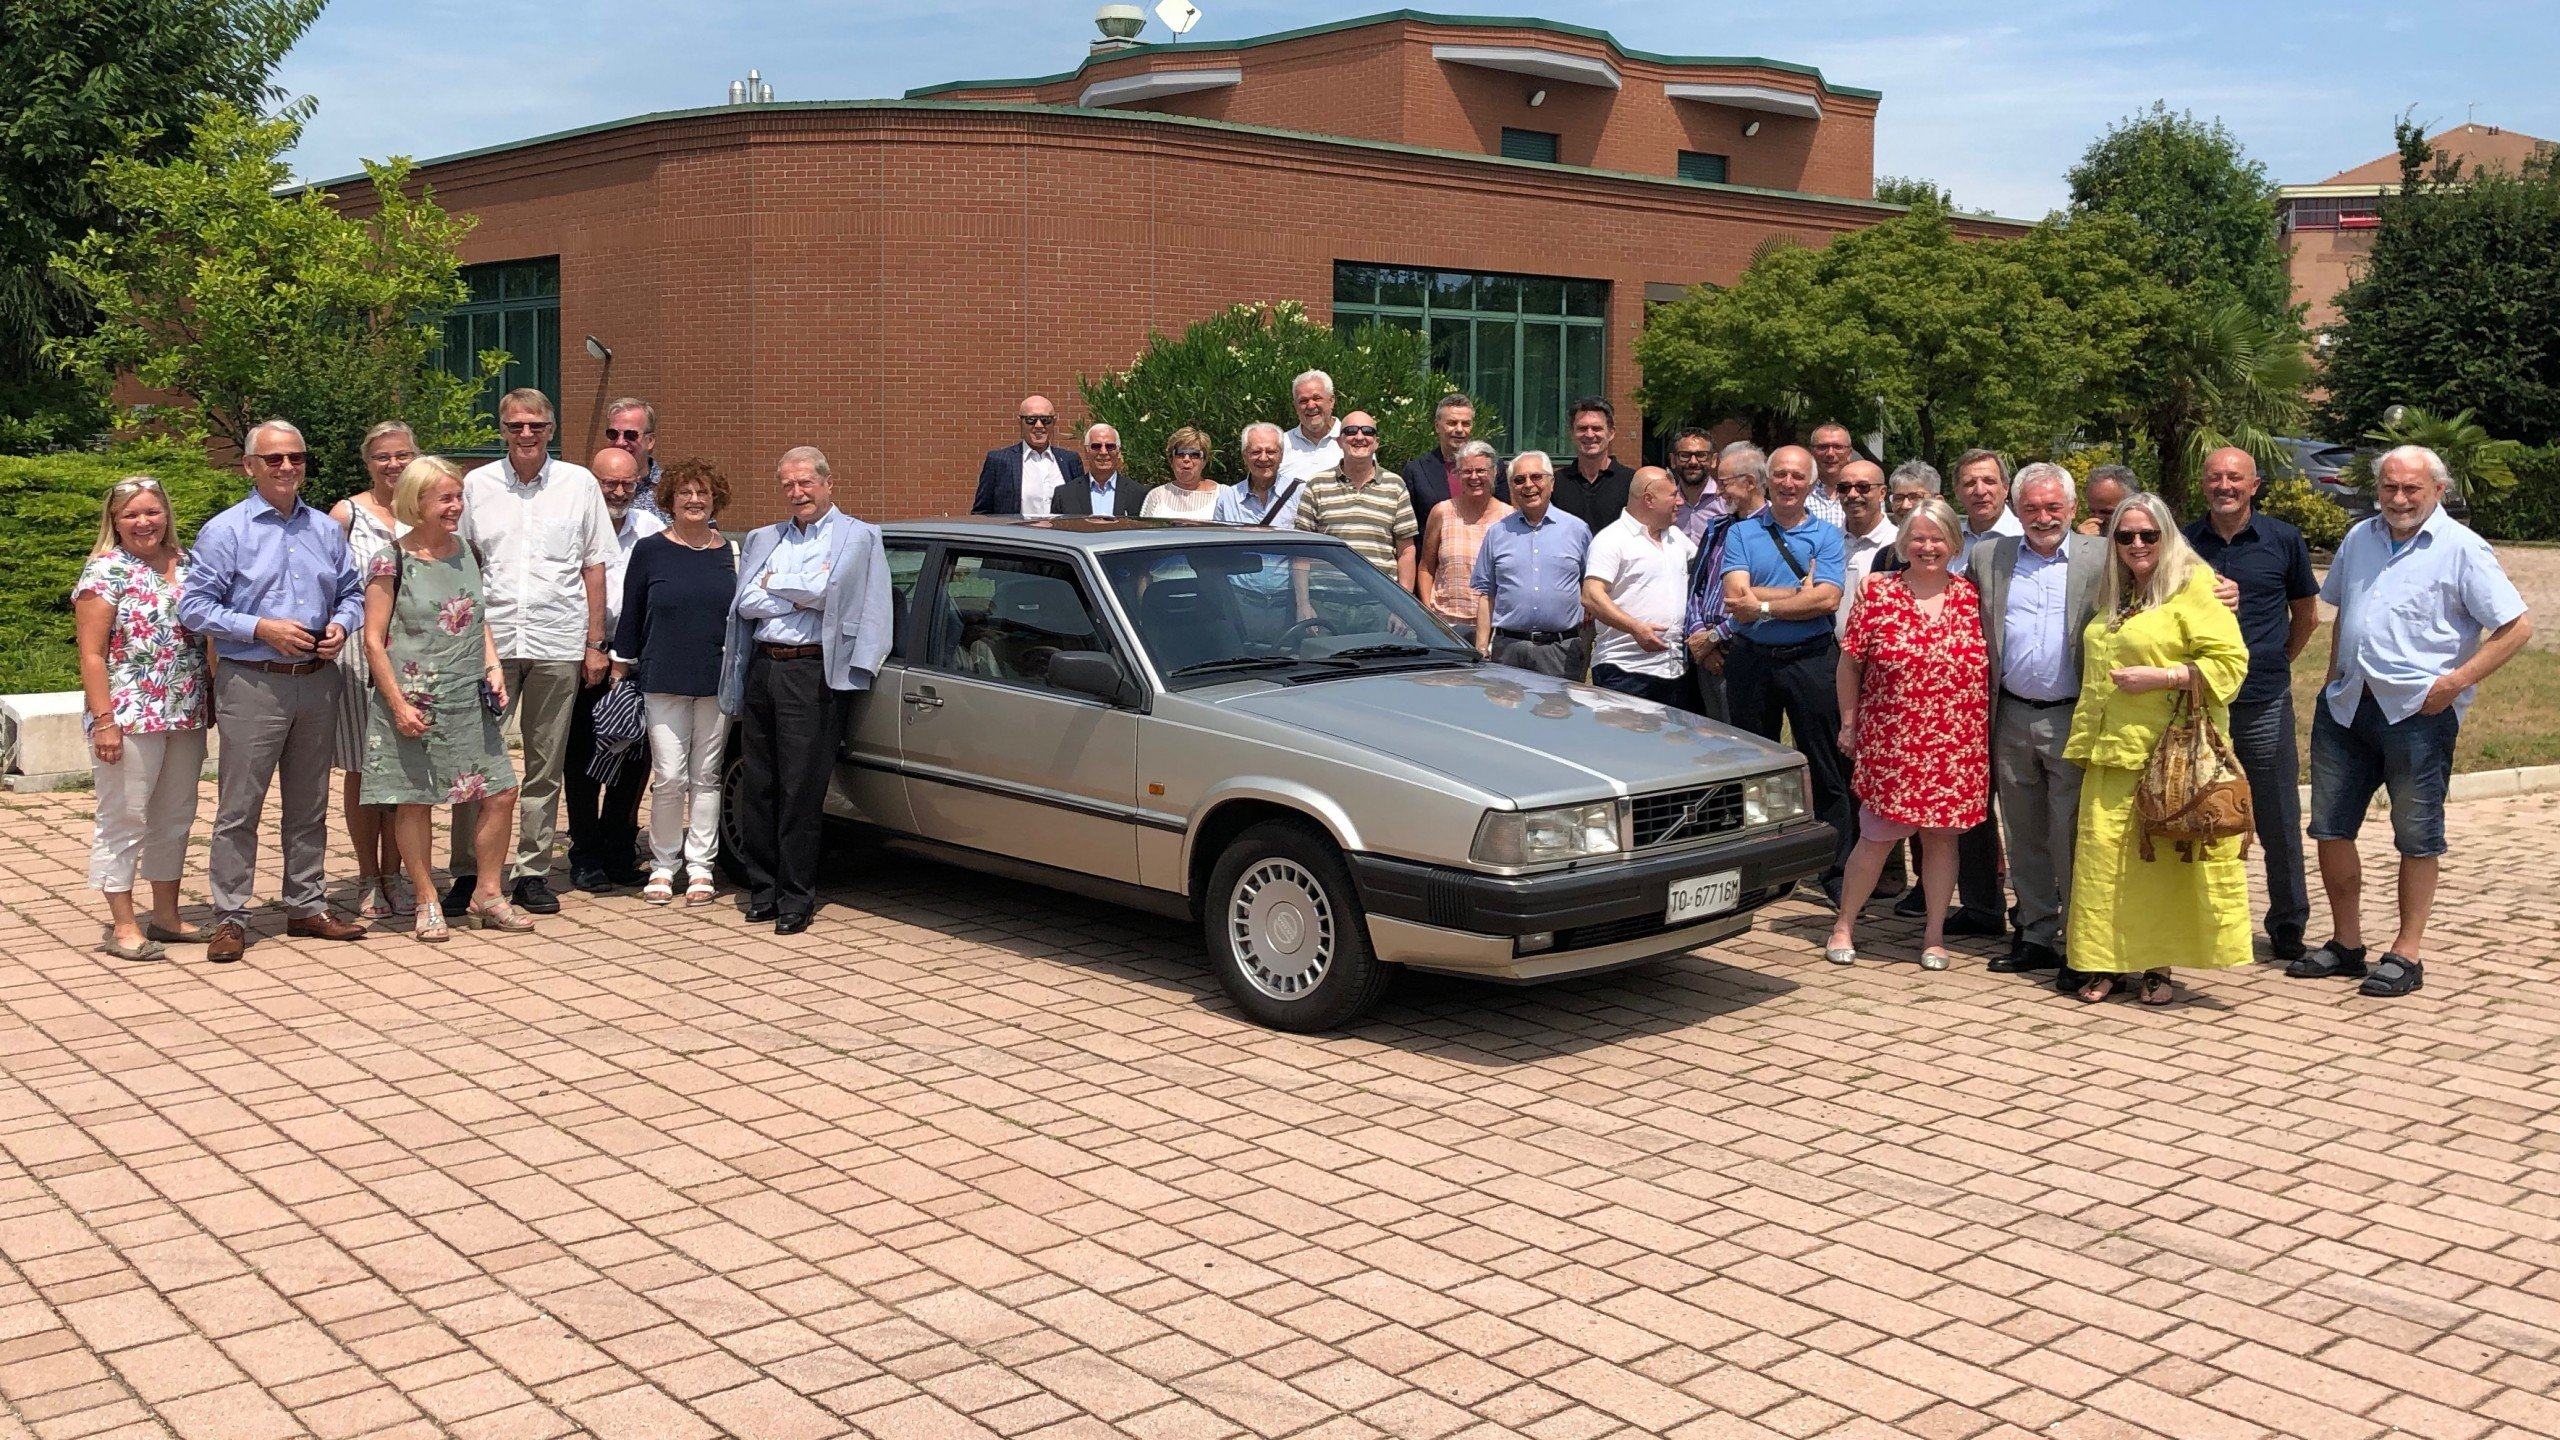 35th Reunion of Volvo and Bertone Team in Turin Italy